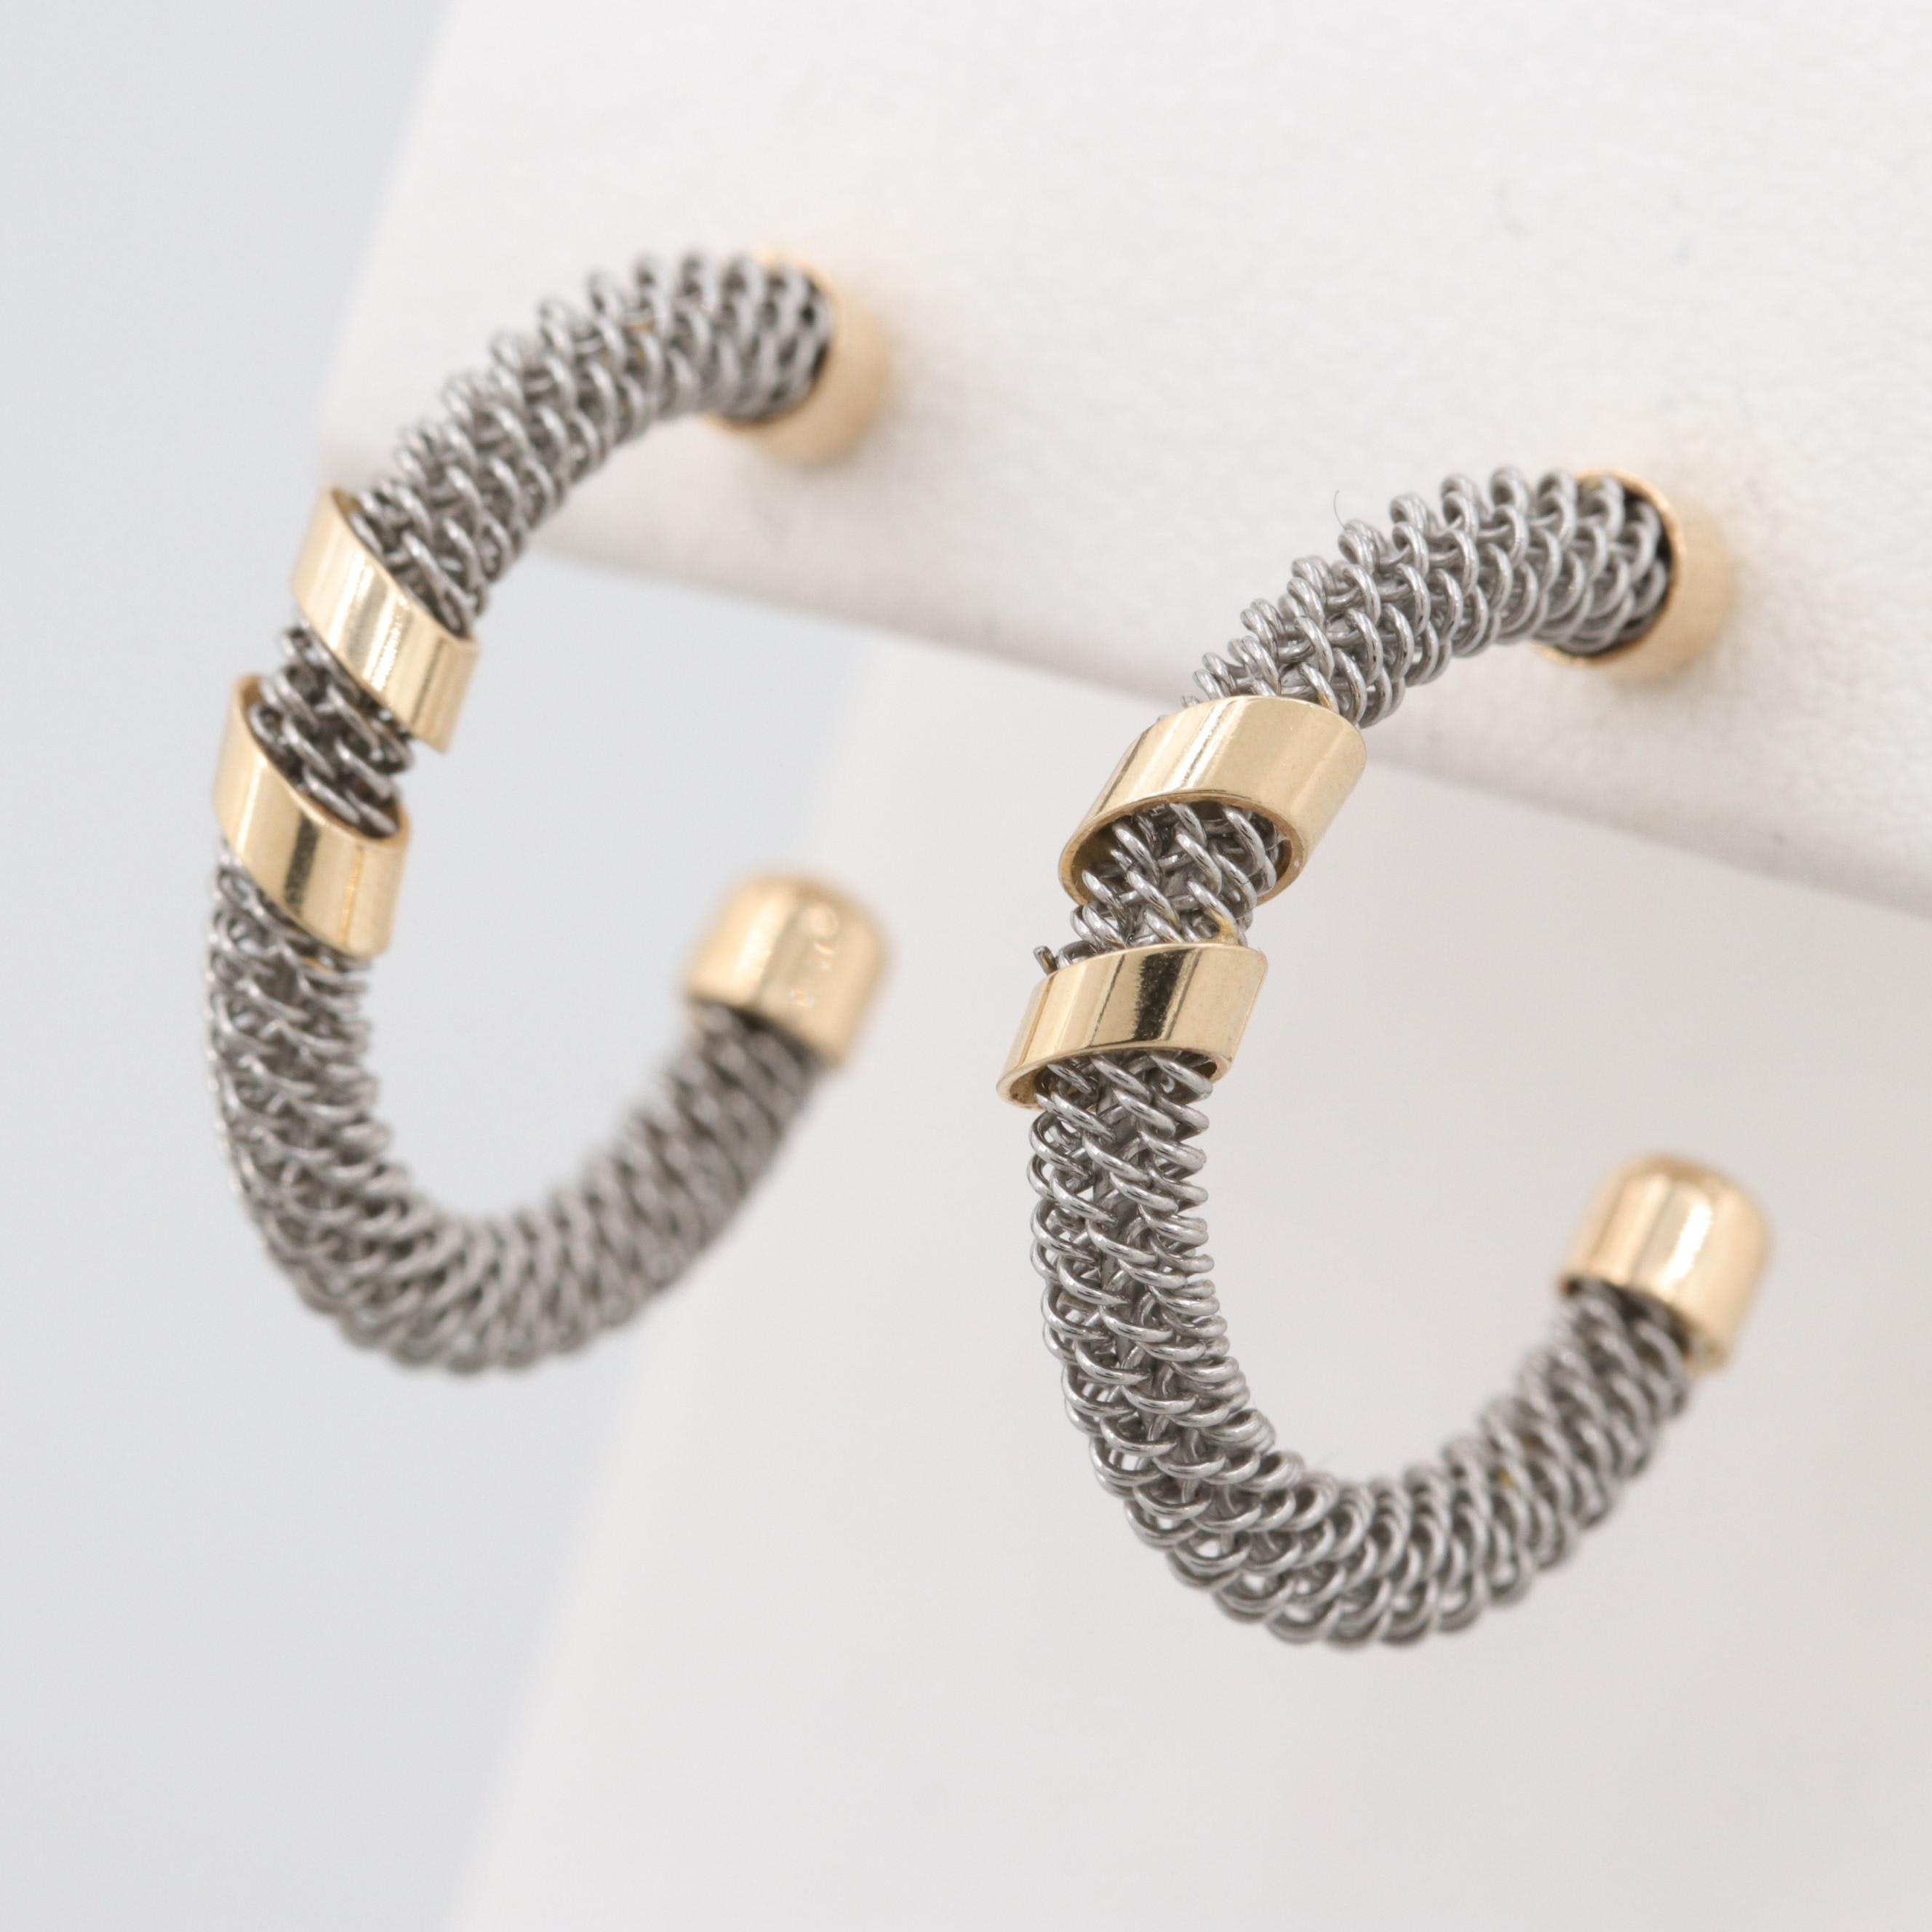 14K Yellow Gold and Silver Tone Earrings